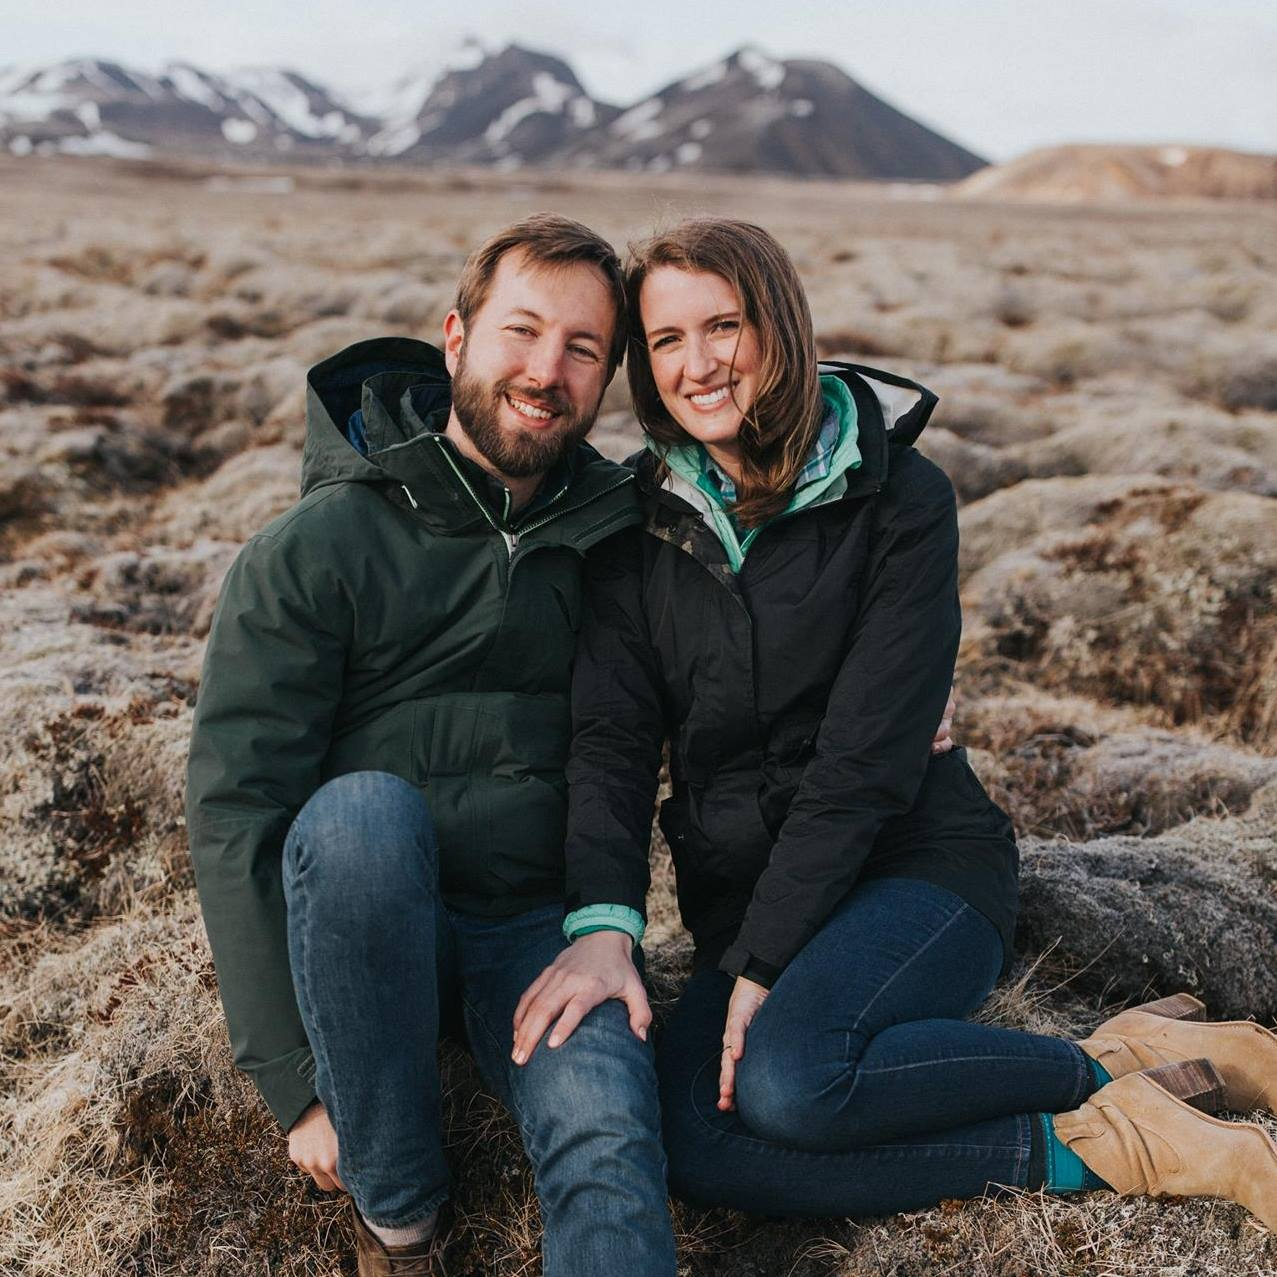 """We met up with Rachel in Iceland for a multi-day """"adventure"""" engagement session, which included traversing mossy lava fields, exploring black sand beaches, and wading through a stream to find a hidden waterfall. The conditions were crazy unpredictable -- often time freezing cold with big gusts of wind and mist -- but Rachel found a way to capture some really AMAZING photos that we love. I was a little nervous before our session, since I'm not one to take many photos of myself and haven't had professional photos in ages, but Rachel is so much fun to work with and really makes you feel comfortable (yes, even in the rain and cold). We are returning to Iceland for our wedding next summer and are of course bringing her along for the ride! I would recommend Brasspenny Photography to anyone looking for a professional and FUN photographer.   - Alison and Dan"""